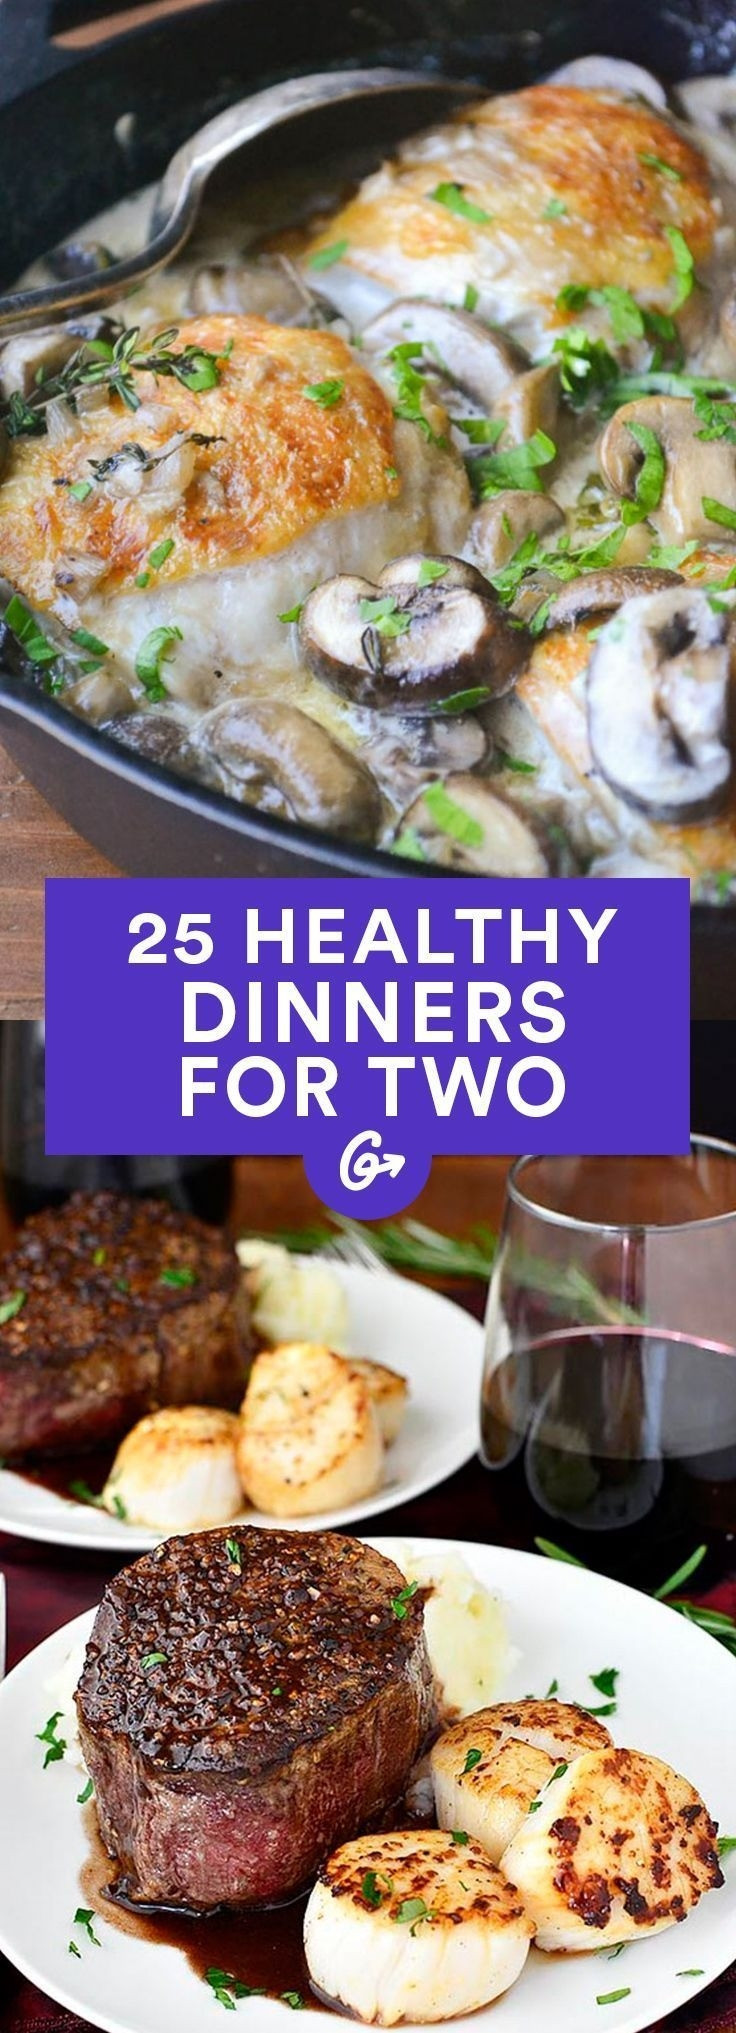 Healthy Dinner Ideas Pinterest  Light Dinner Ideas For TwoWritings and Papers